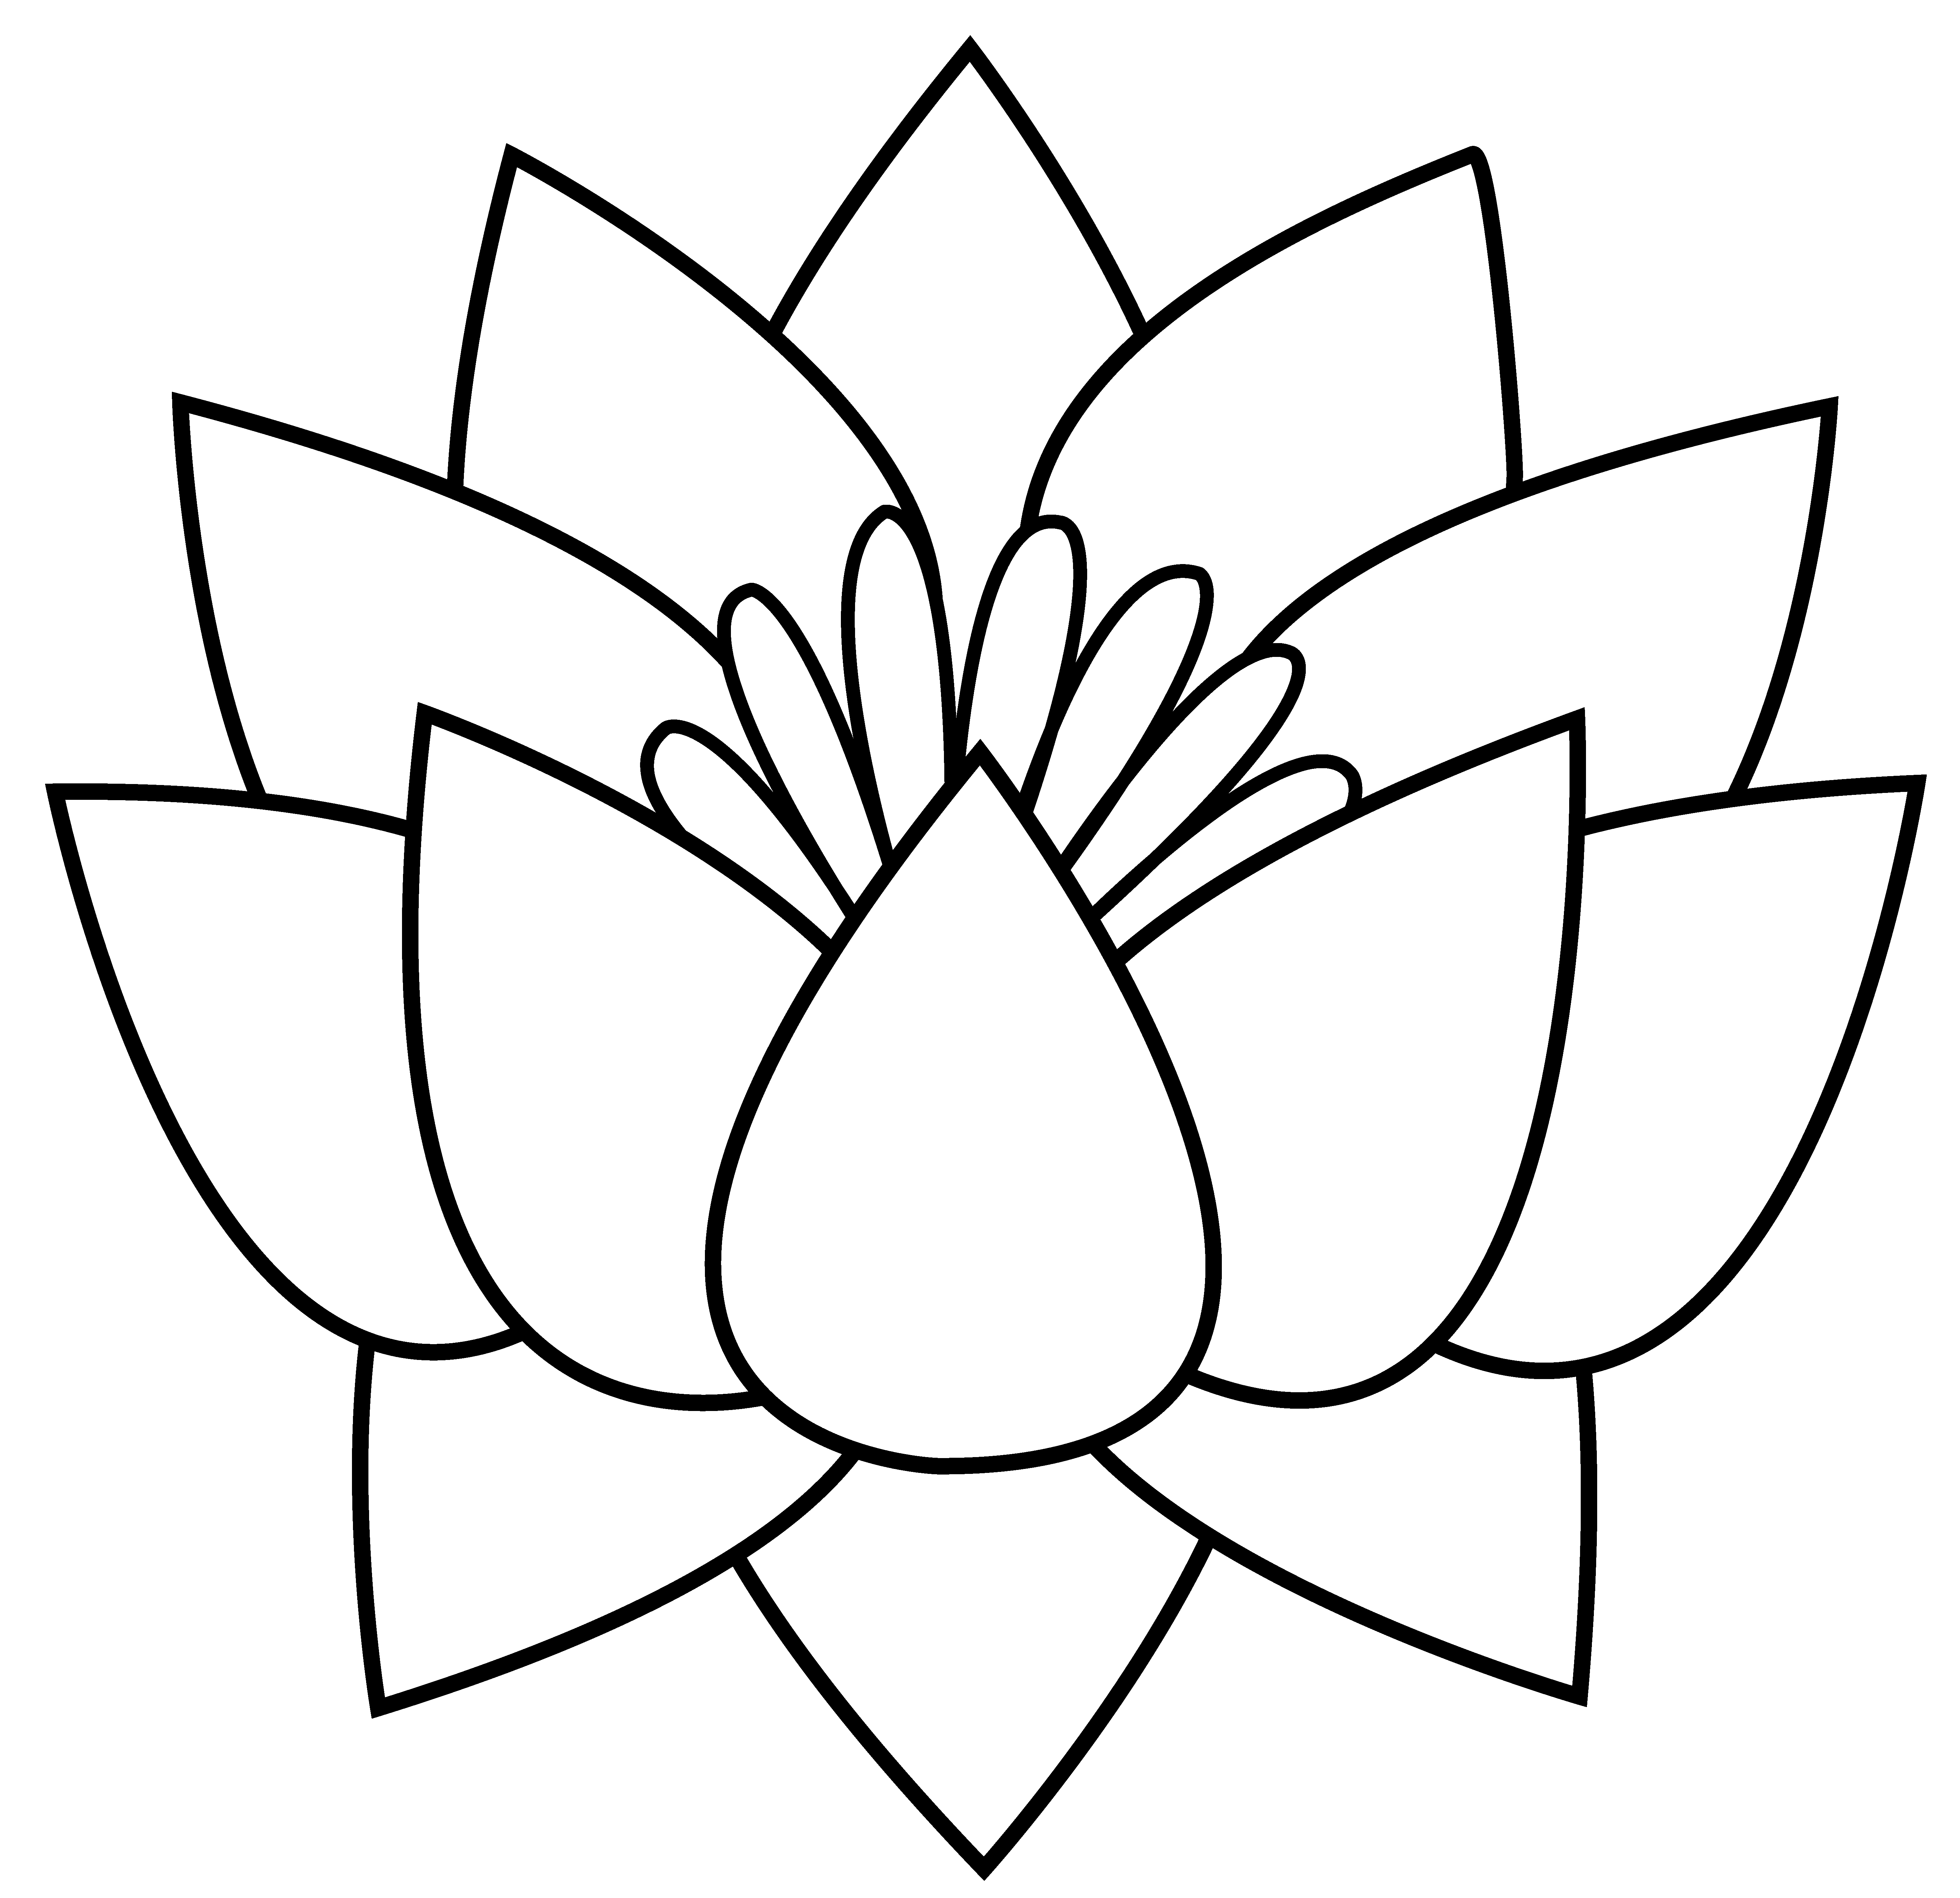 5953x5764 15 Lotus Flower Pictures Black White Compilation Black